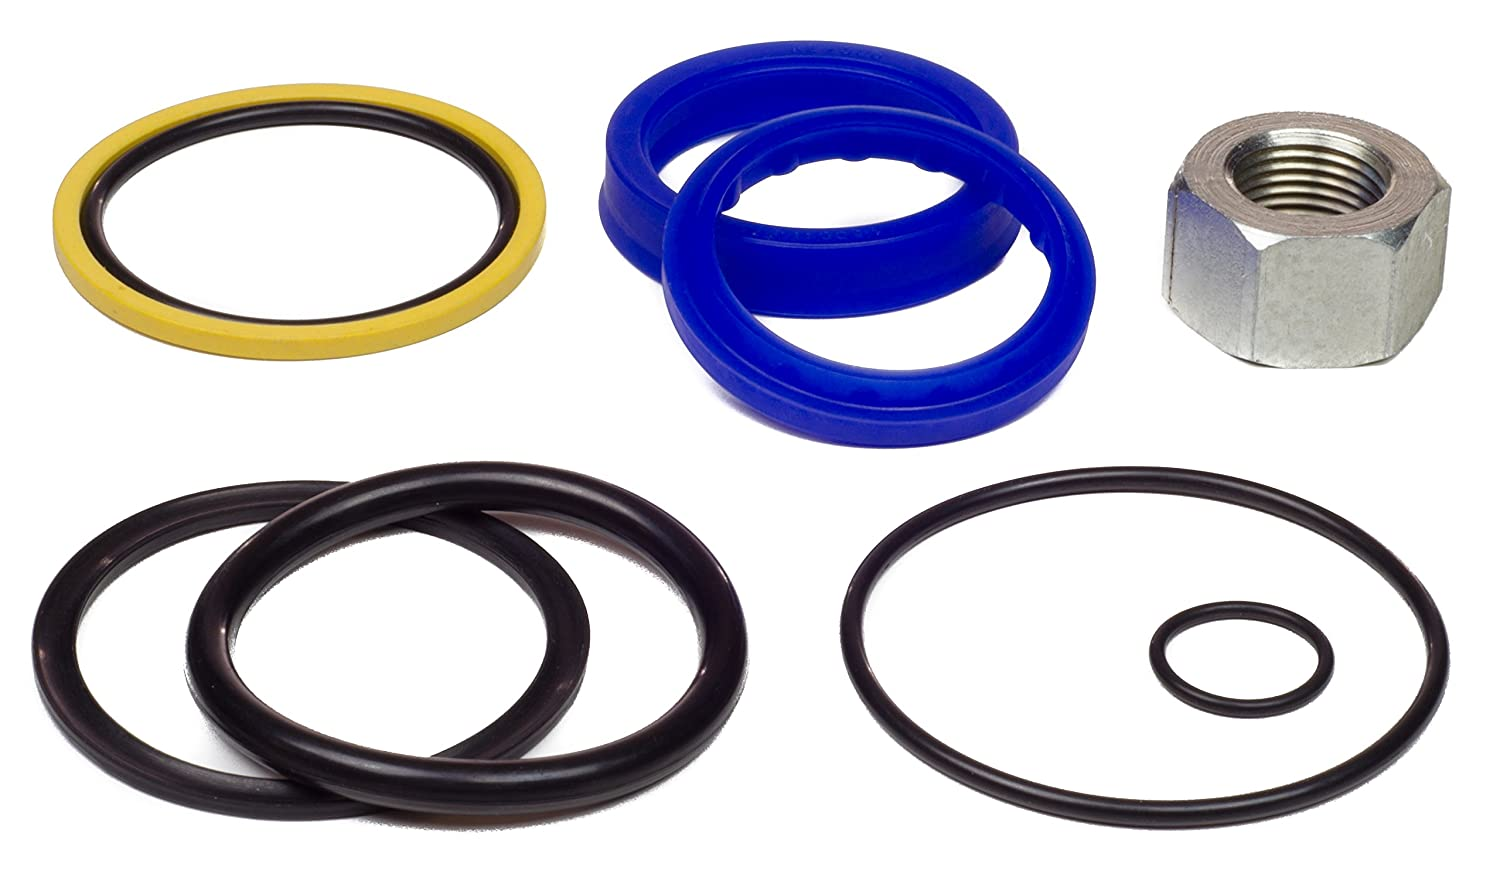 Kit King - Bobcat 6589793 Aftermarket Hydraulic Cylinder Seal Kit Kit King USA